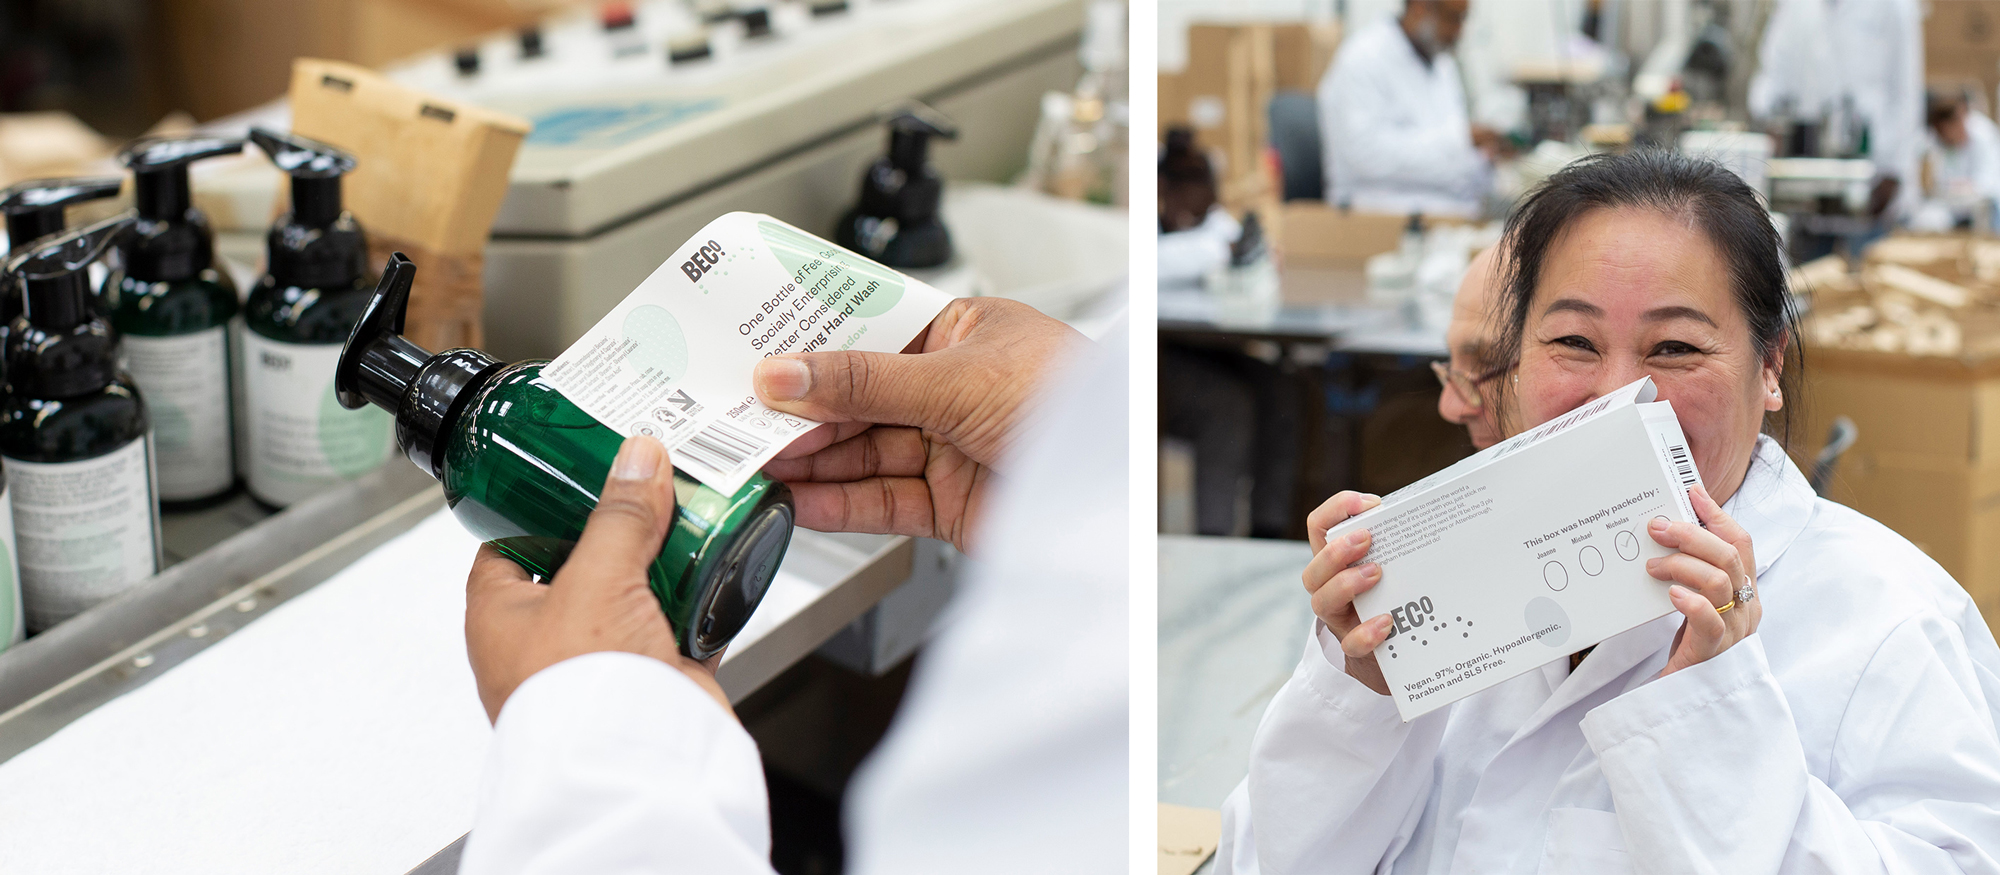 Beco (Better Considered) , is a vegan, sustainable soap-producing social enterprise which creates 'real jobs for real people in the UK who are visually impaired, disabled or disadvantaged'.